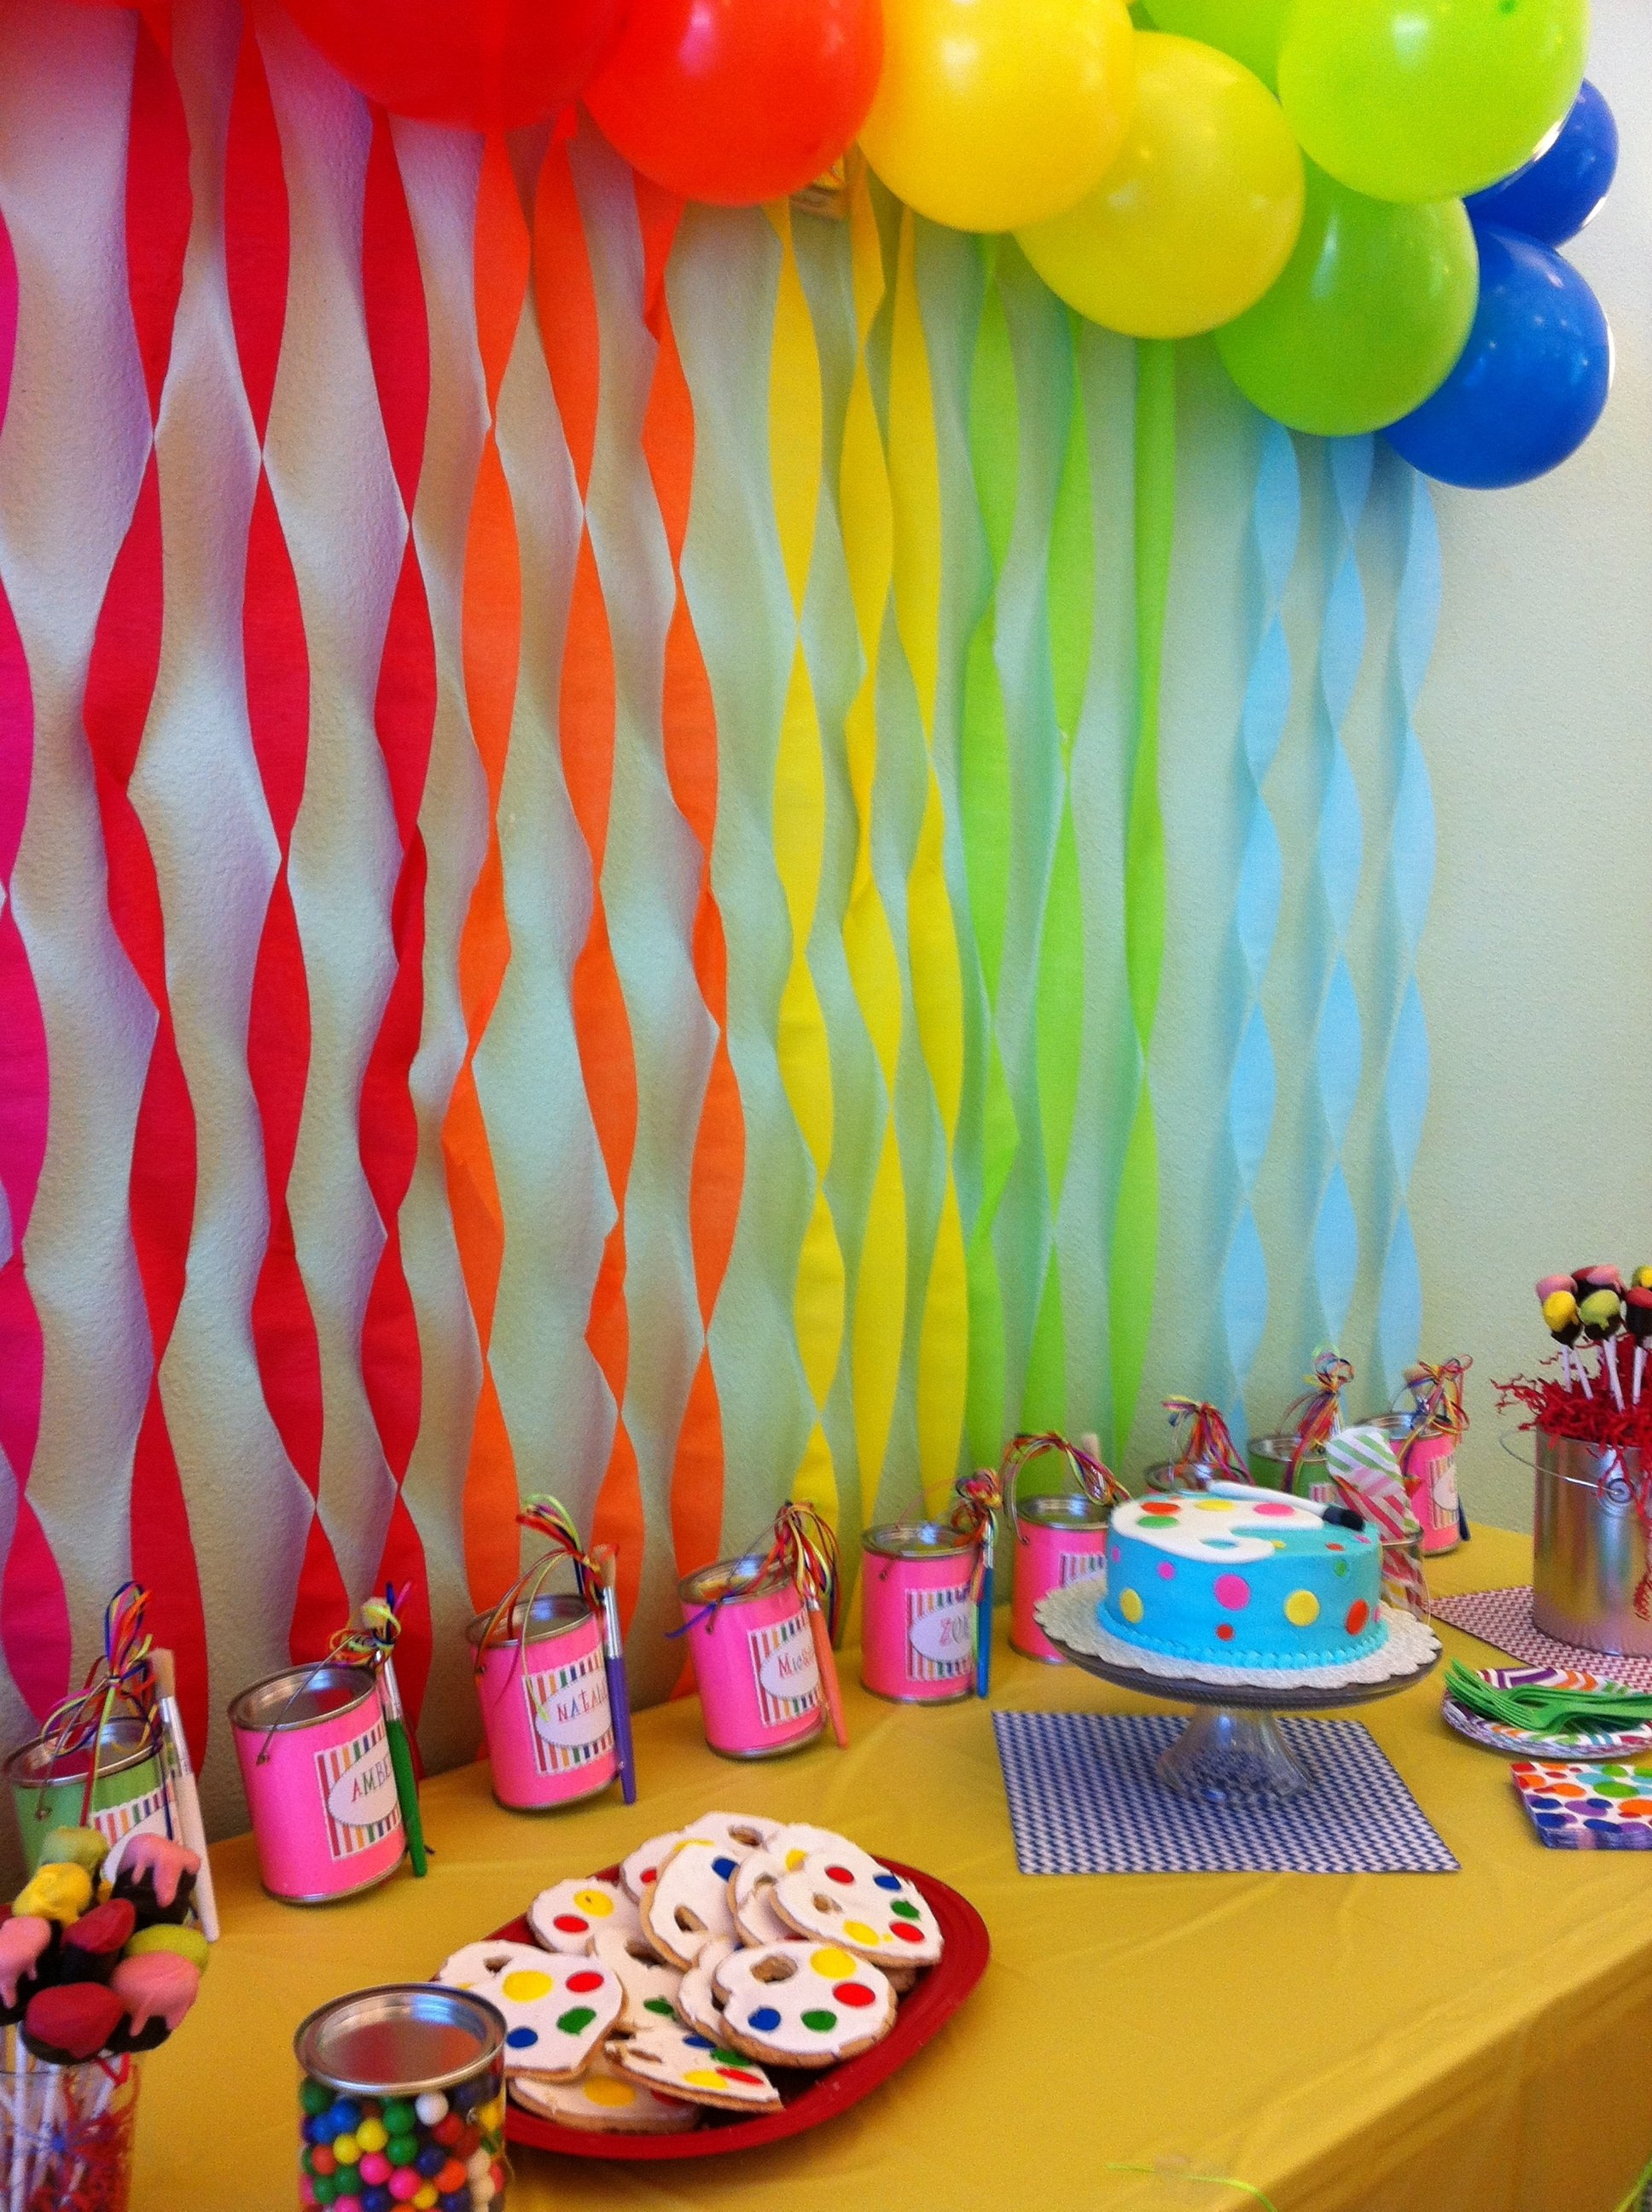 10 Elegant Birthday Ideas For 8 Year Old Daughter Girl Art Party